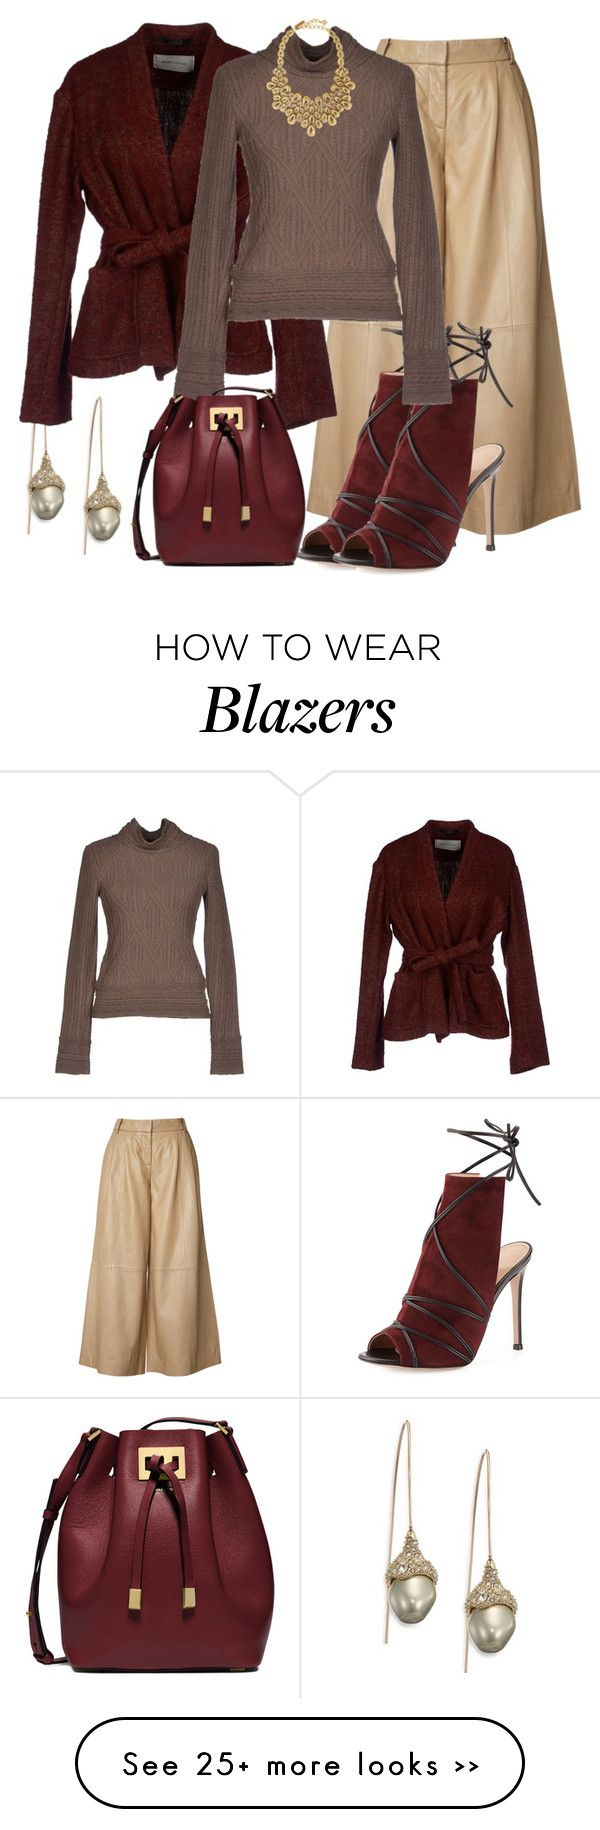 """Sweater Weather"" by chris1017 on Polyvore featuring Alexis Bittar, TIBI, Mauro Grifoni, Gianvito Rossi, Vicedomini, Oscar de la Renta, Michael Kors and sweaterweather"